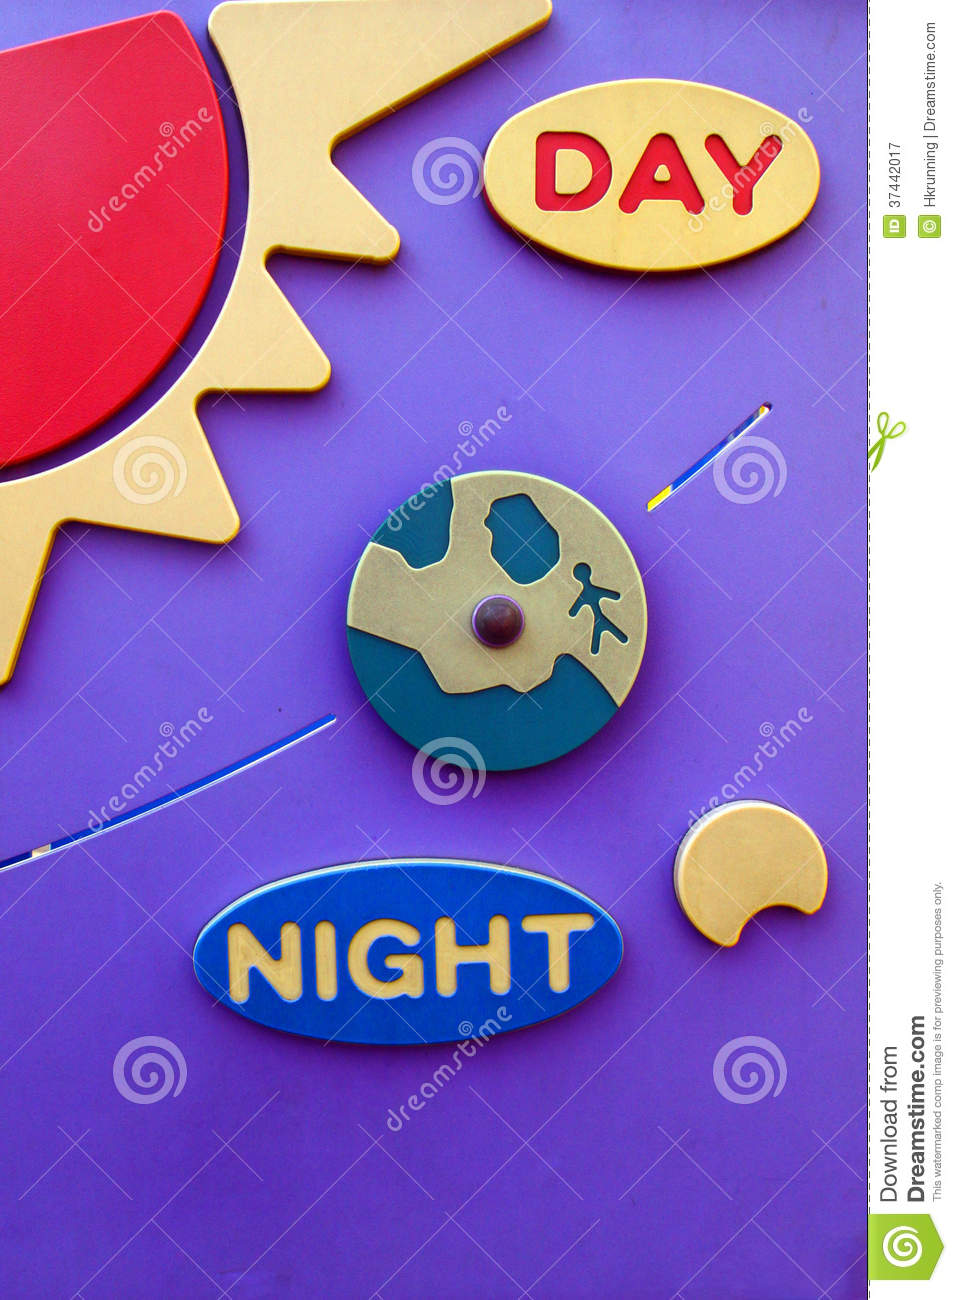 Kids at night with moon royalty free stock photography image - Royalty Free Stock Photo Board Day Earth Moon Night